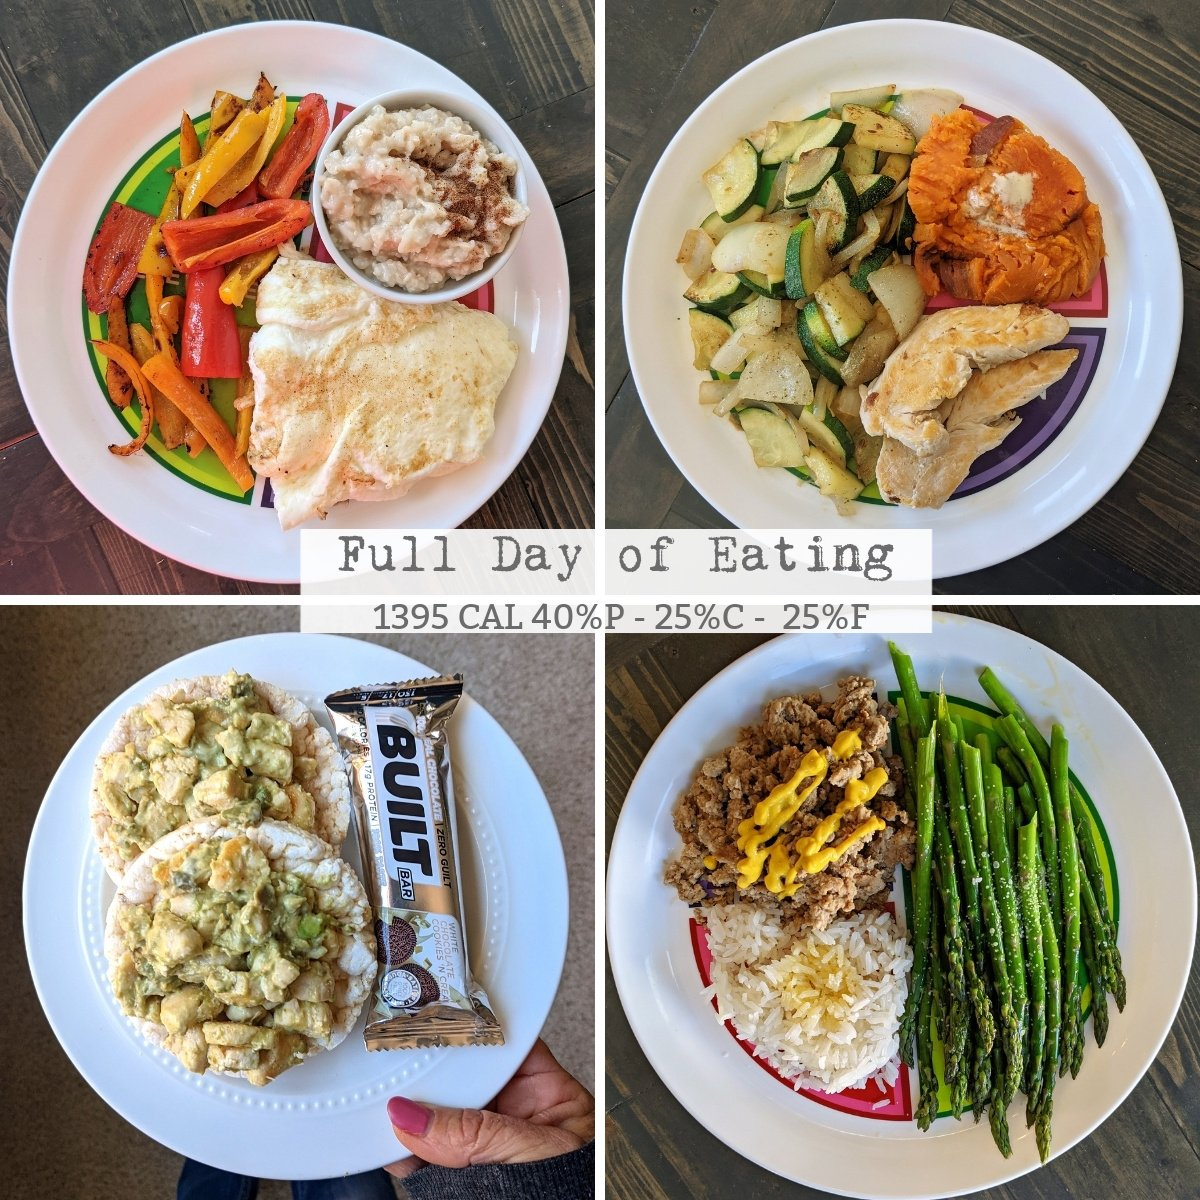 full day of eating 1400 calories 40-35-25